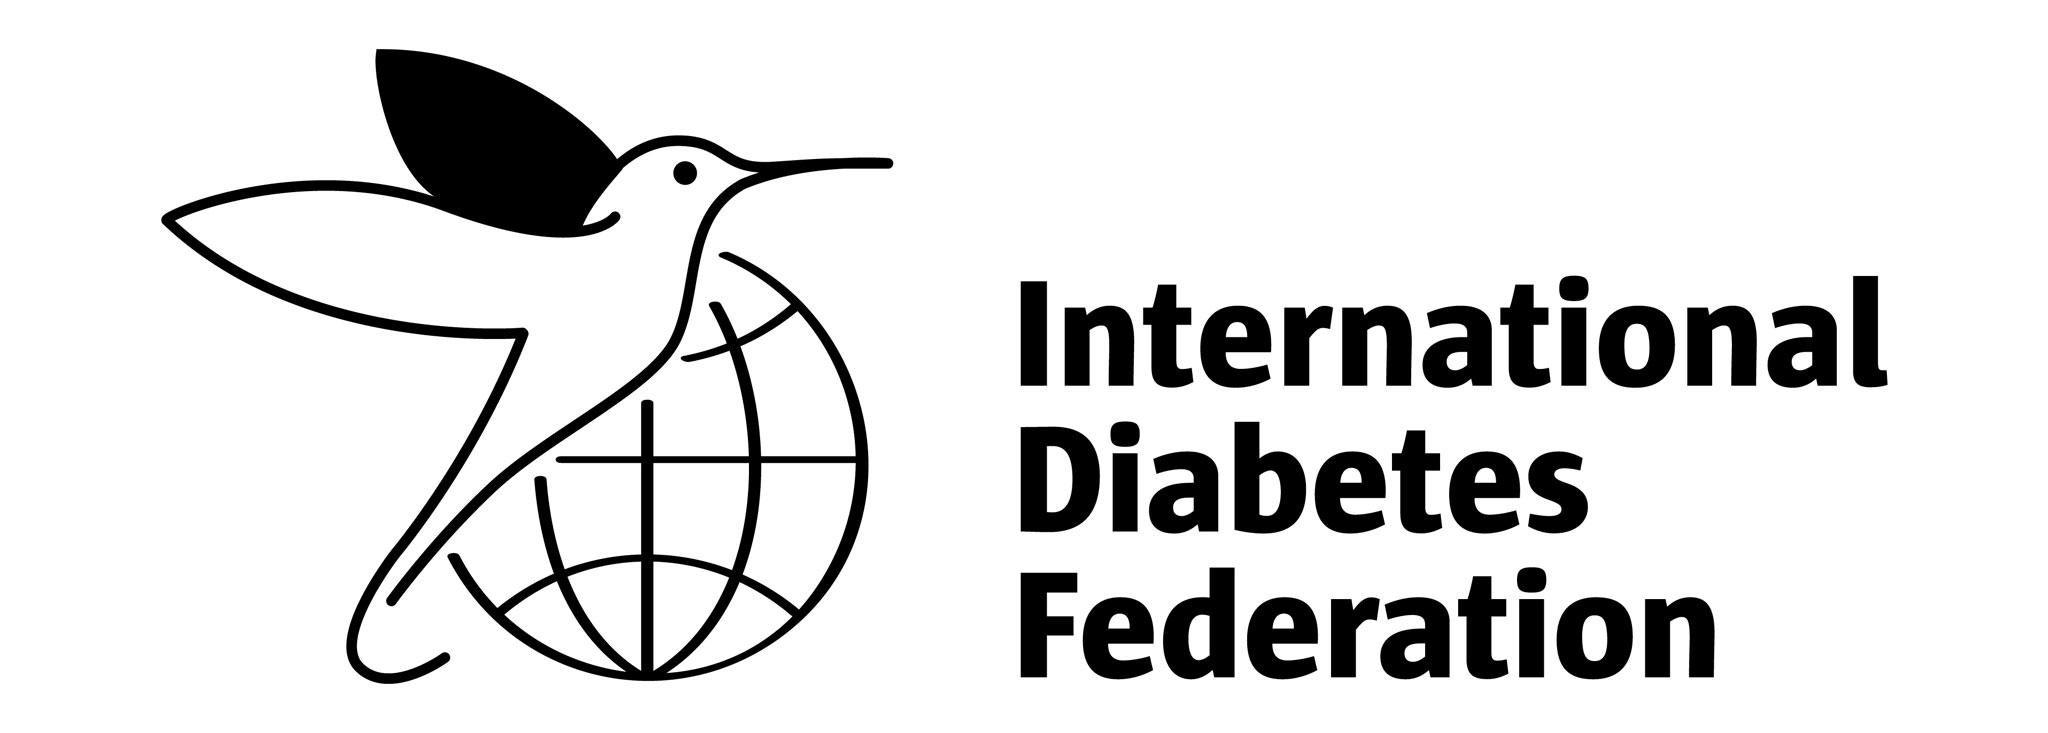 The International Diabetes Federation and Its Vision